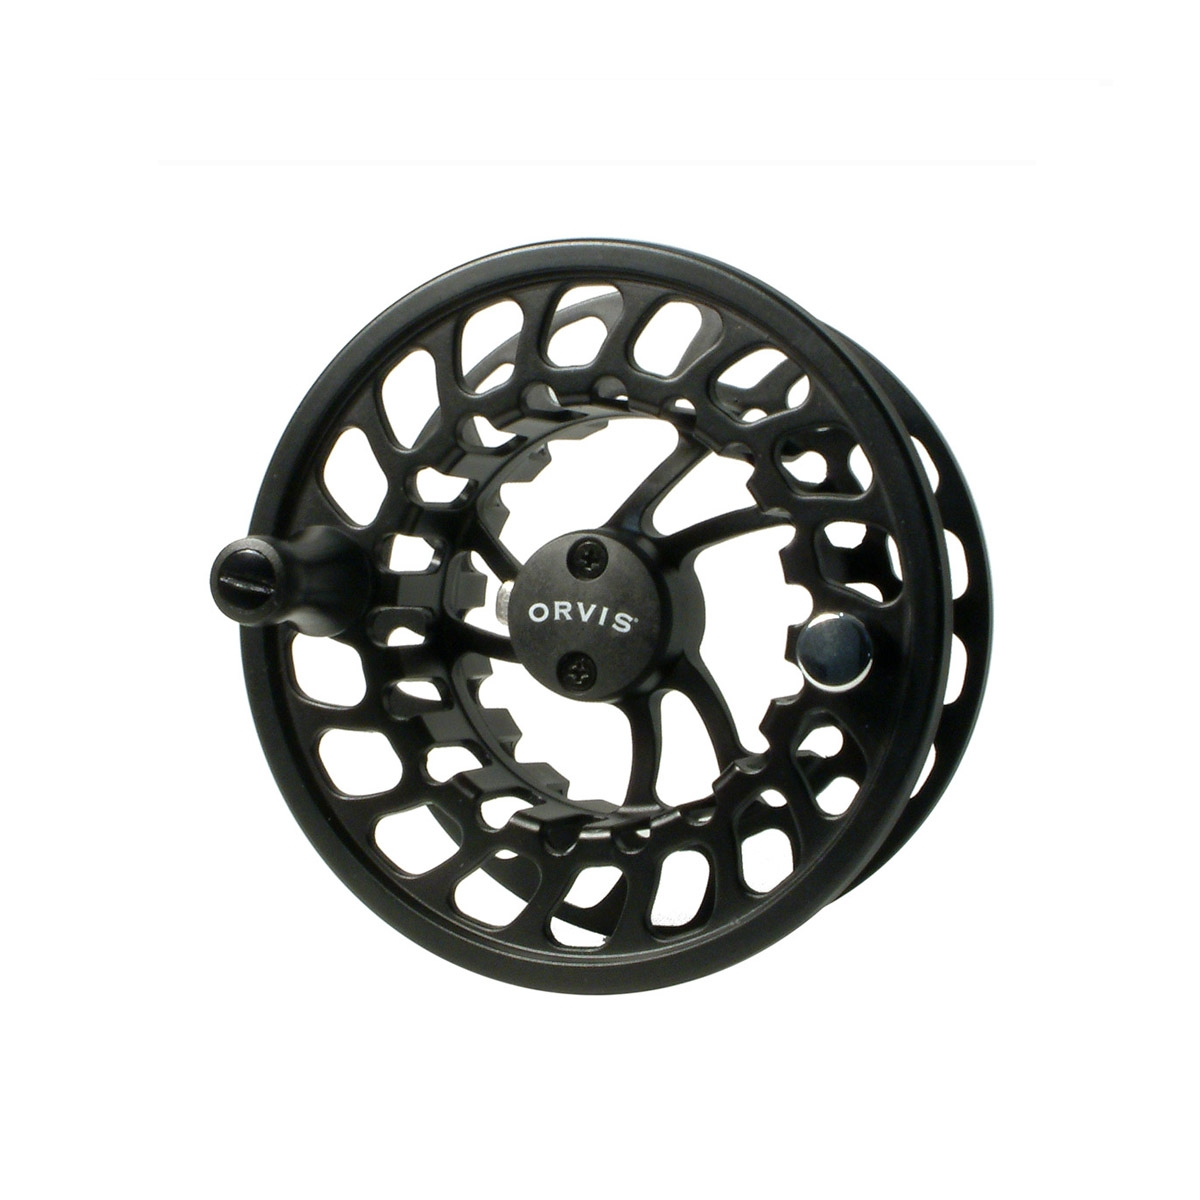 Orvis Clearwater IV Spare spool